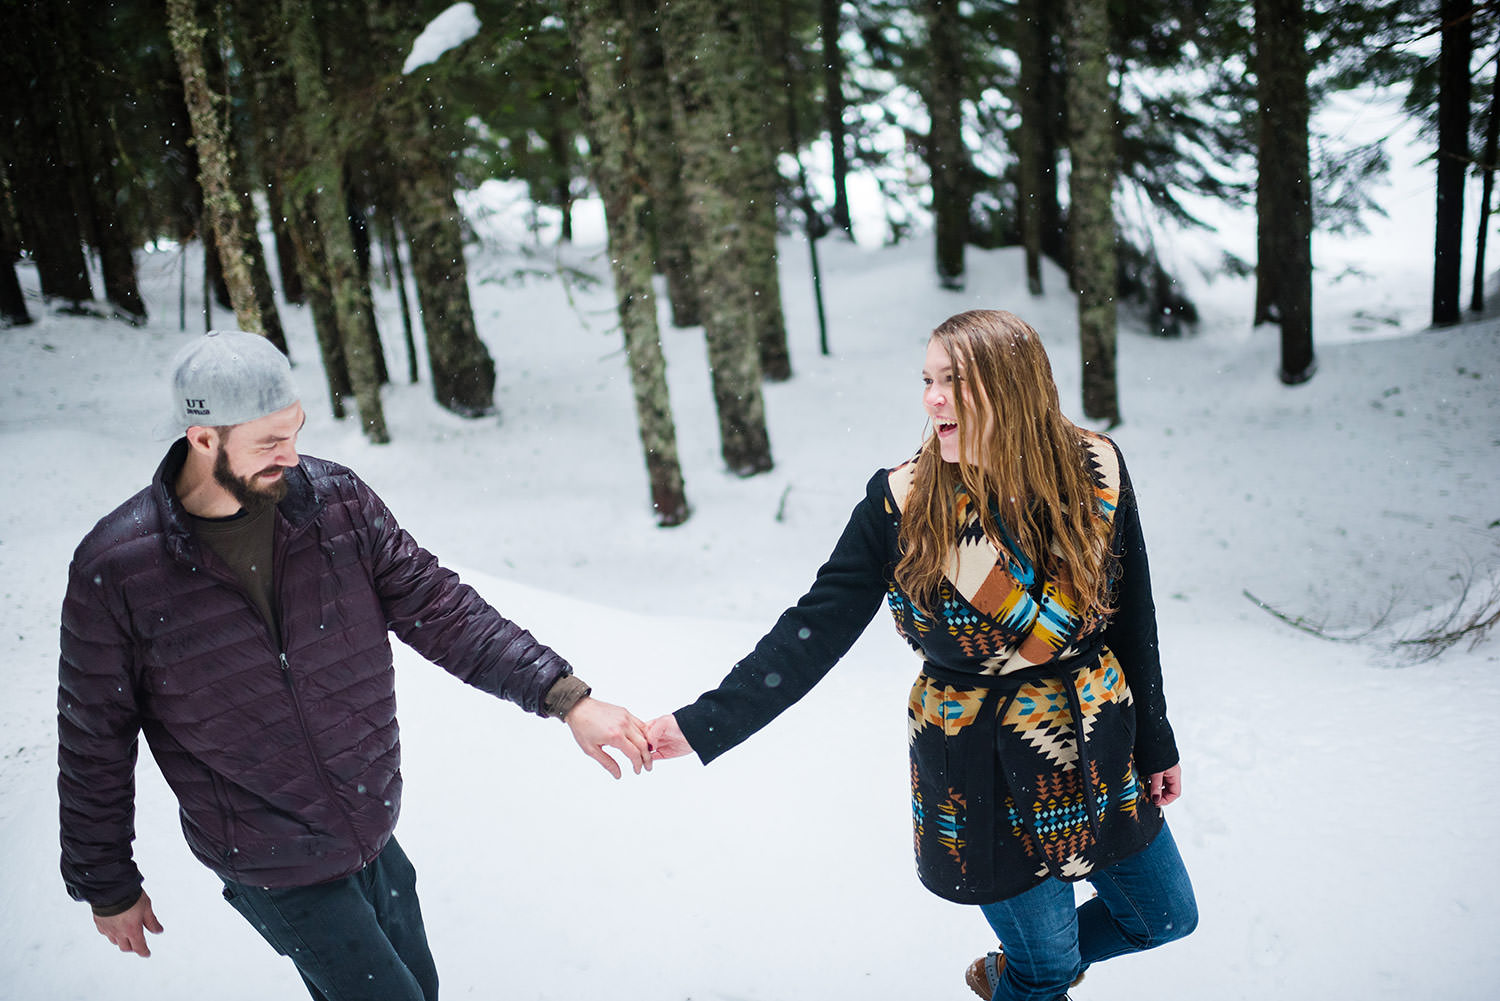 Walking in the snow engagement session